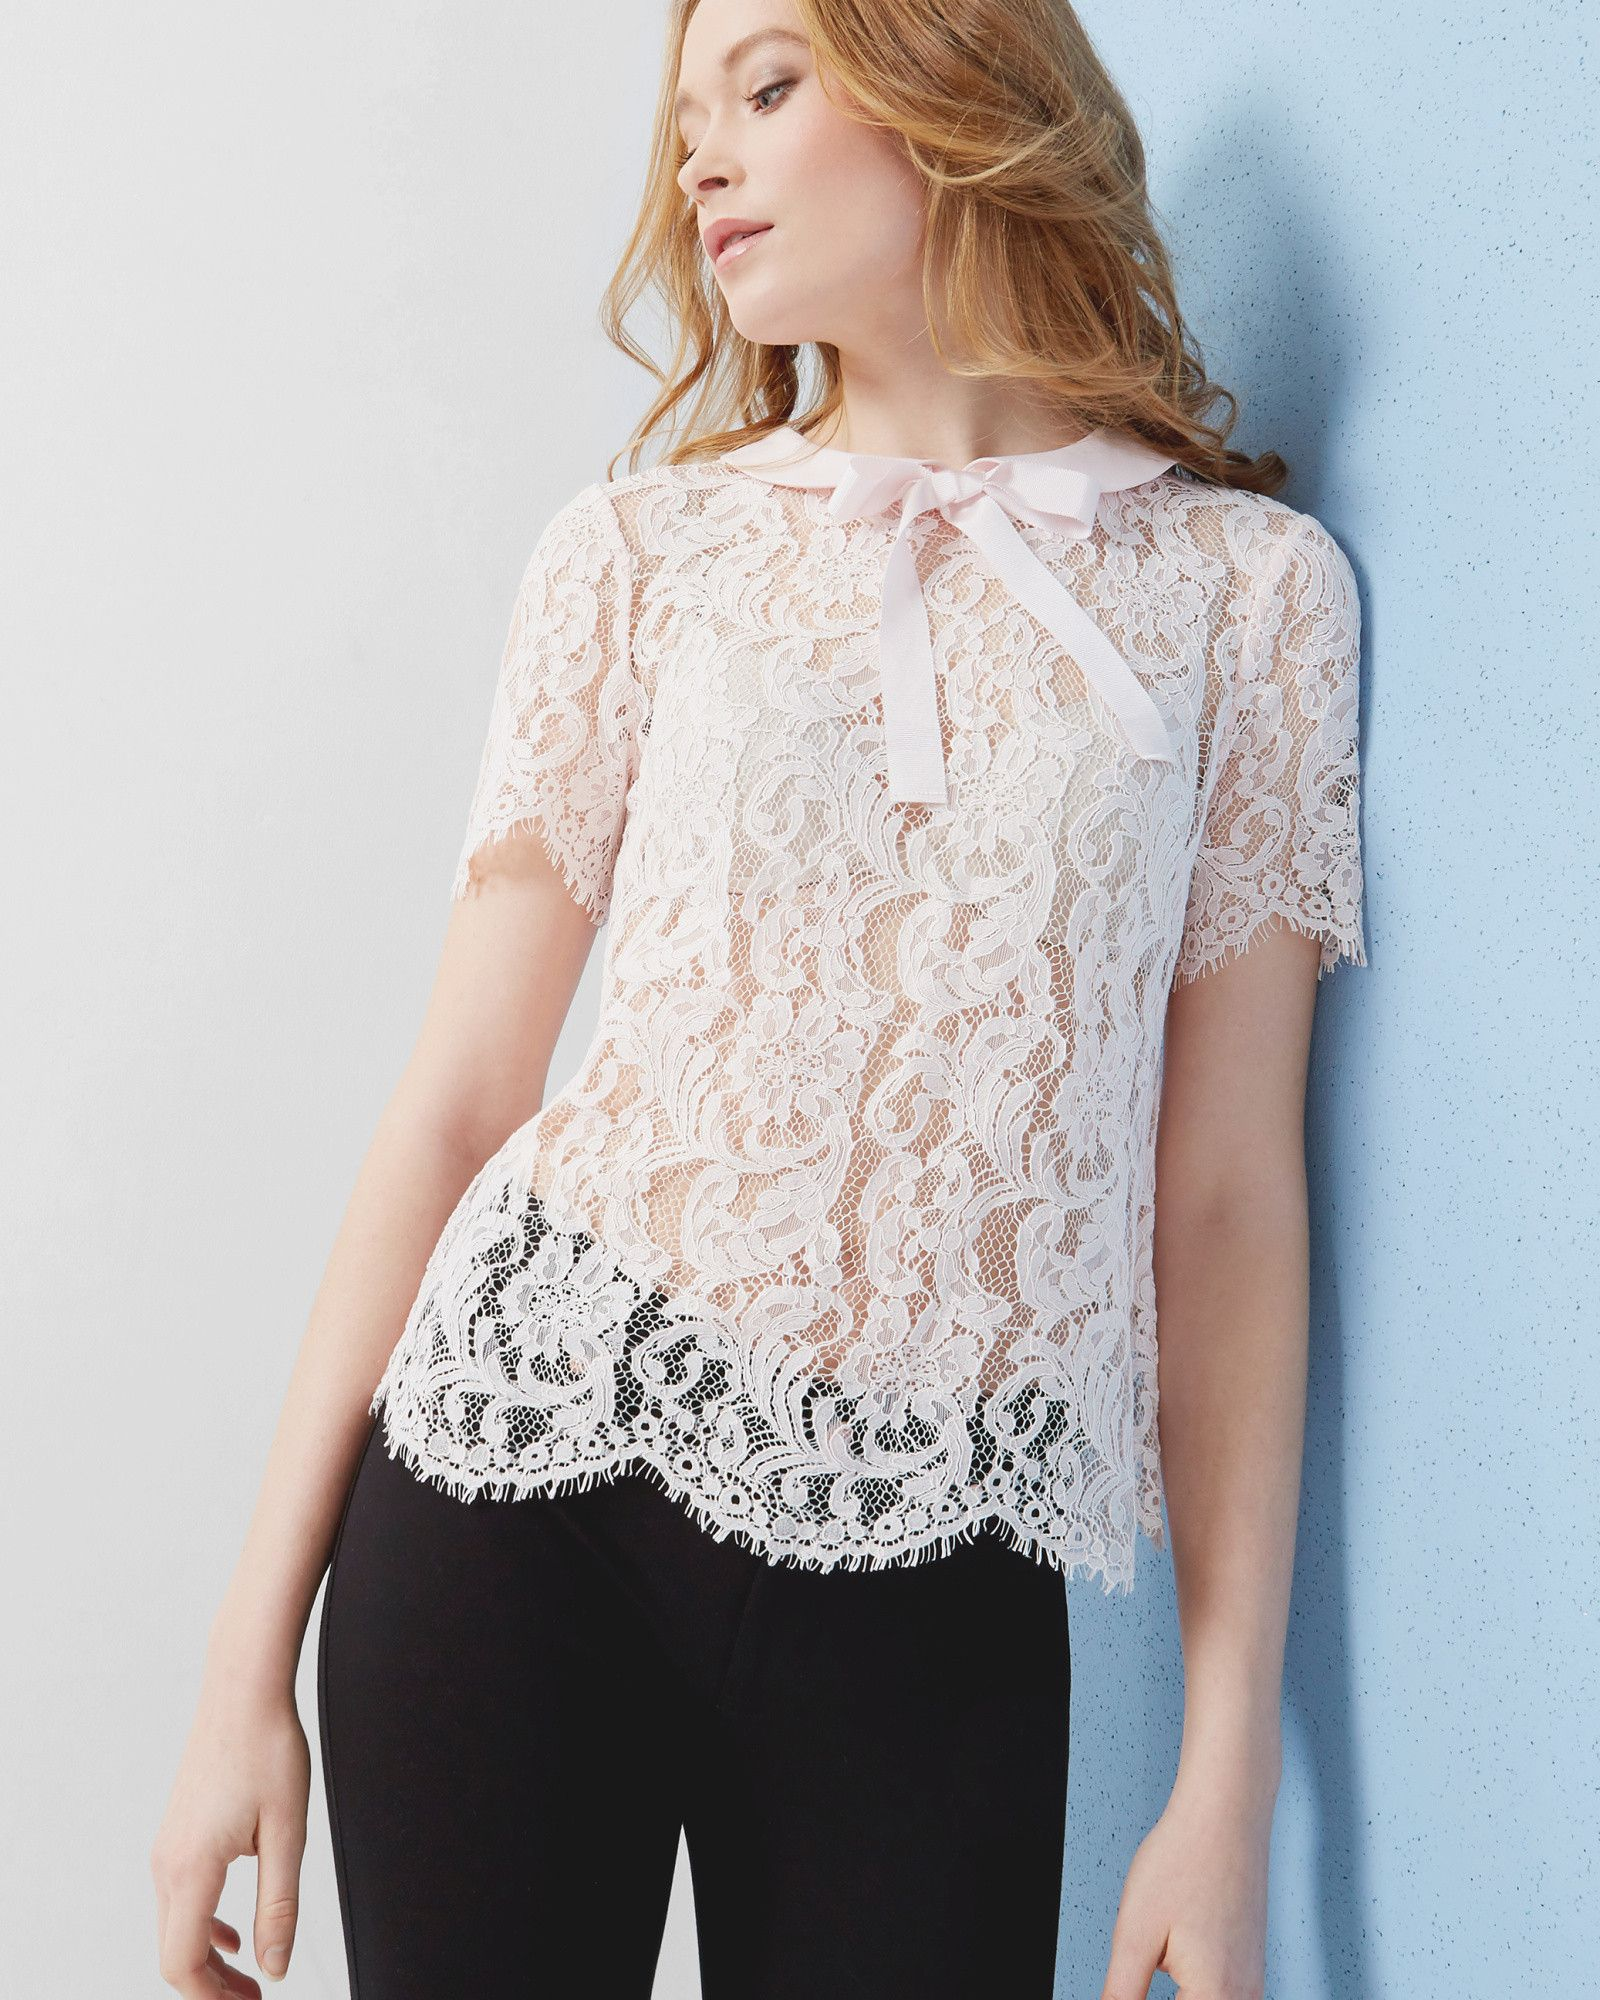 742b68278639a Bow detail lace top - Baby Pink